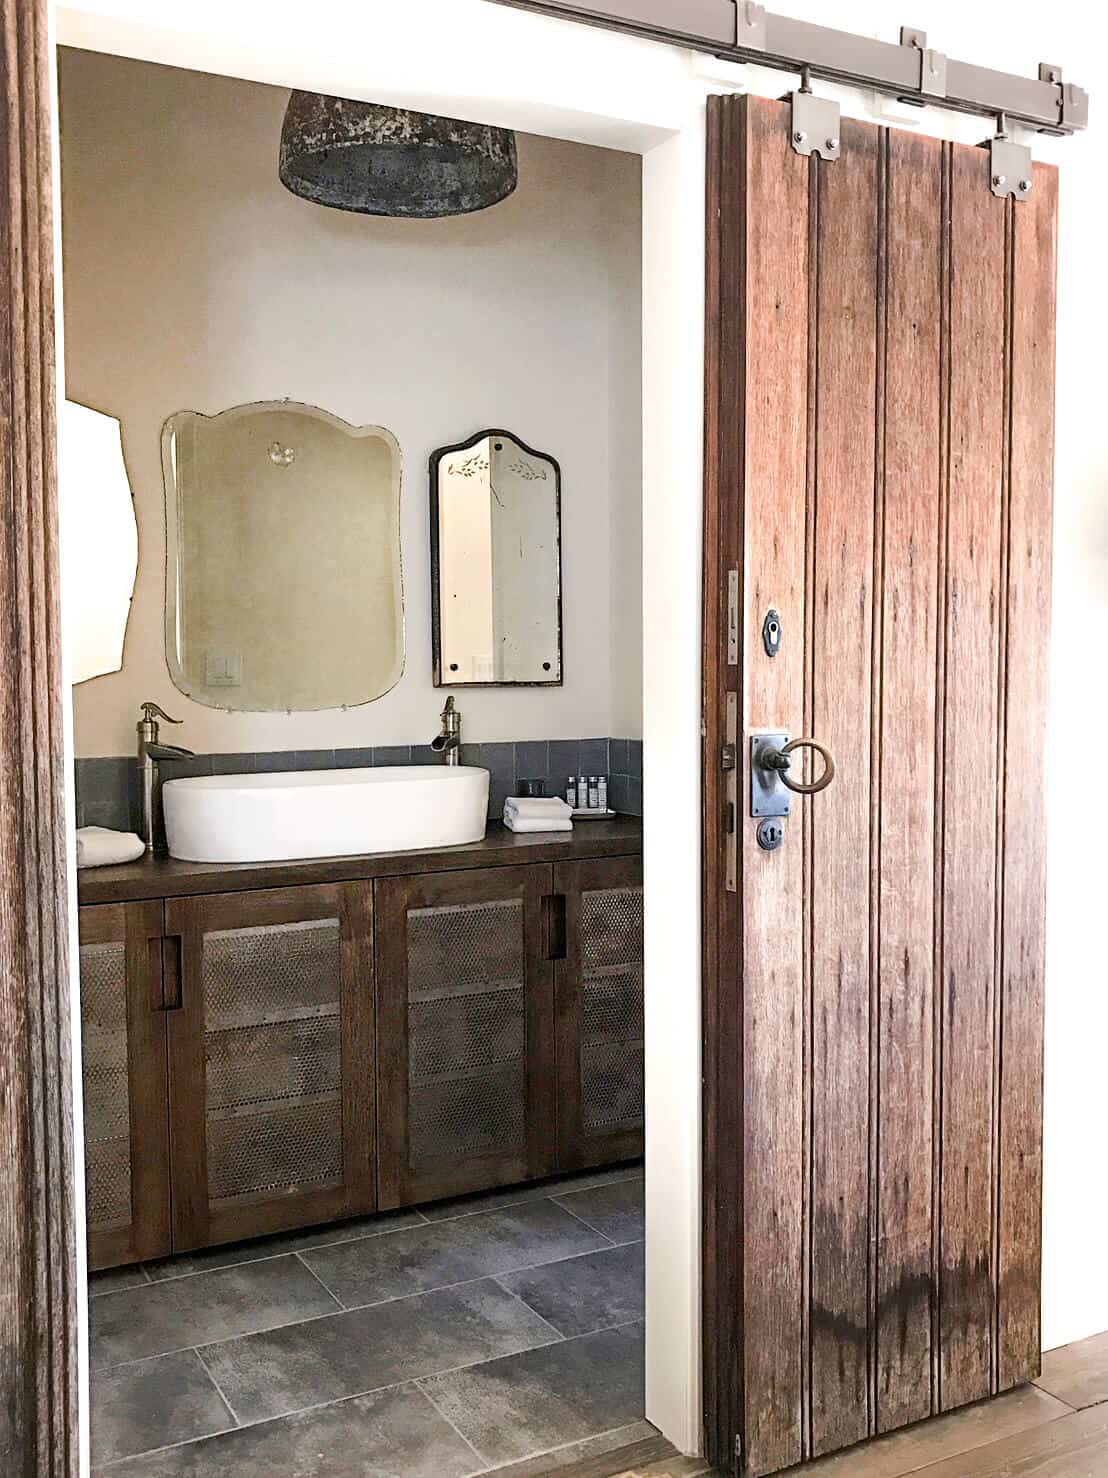 Emily-Henderson_Round-Top_Texas_Antique_Flea-Market_Shopping_EHD-Team_Event-Space_Modern-Farmhouse_Rustic_The-Vintage-Roundtop_bathroom_1